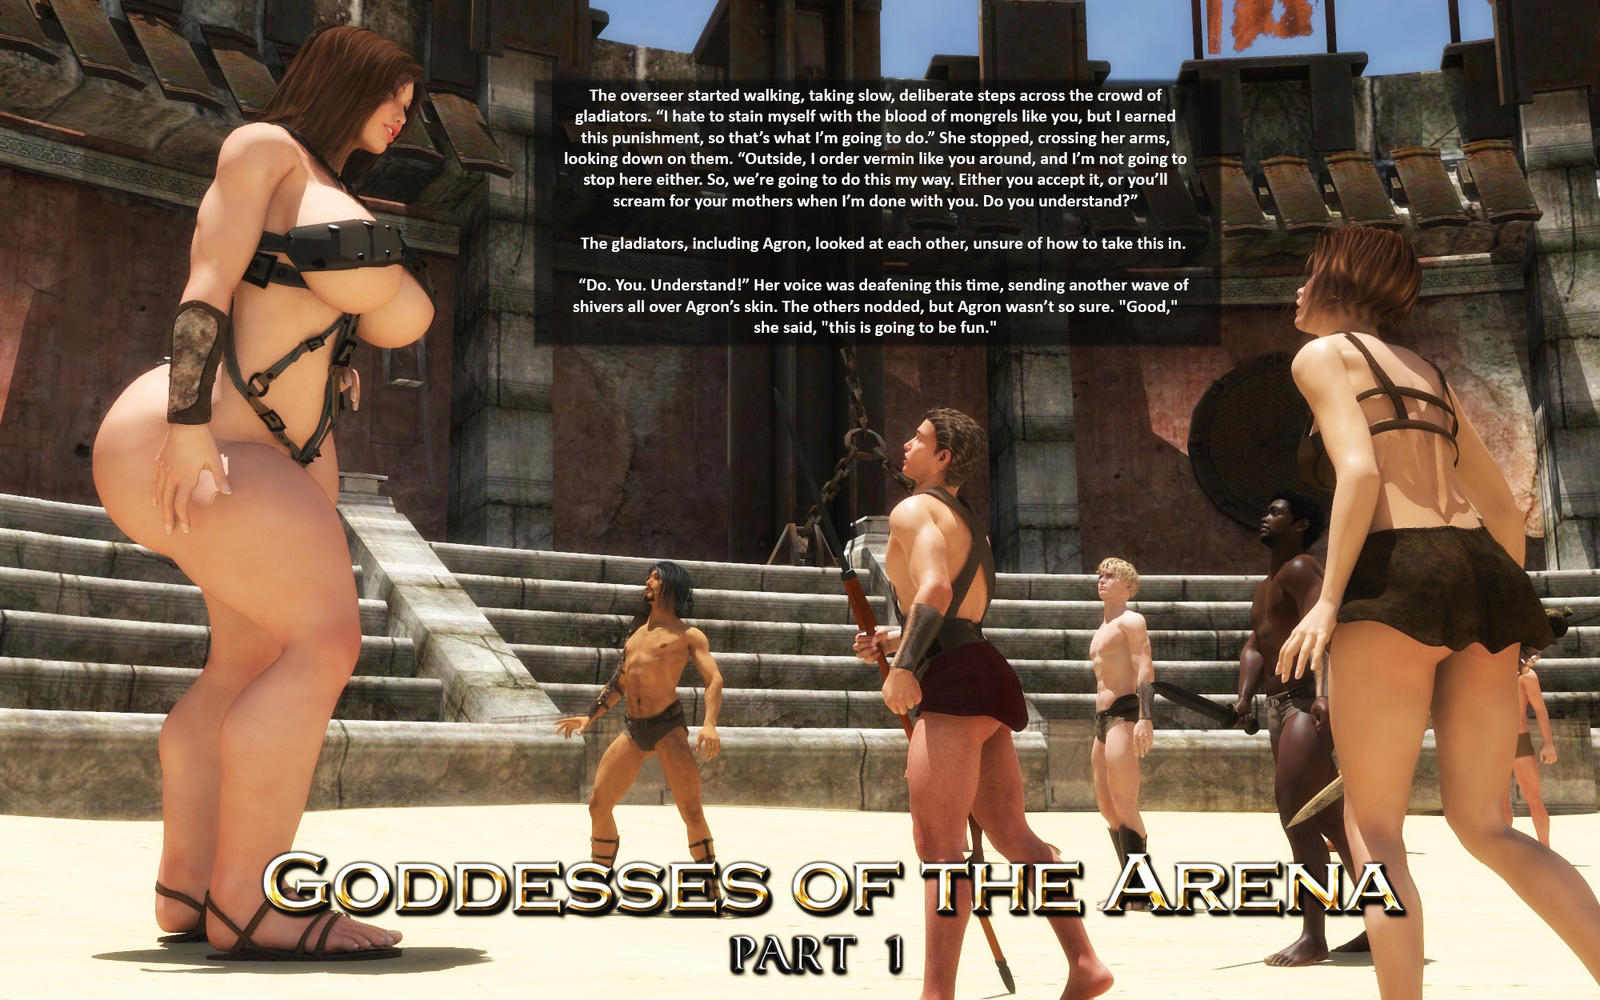 Goddesses of the Arena Preview 1 by RedFireD0g